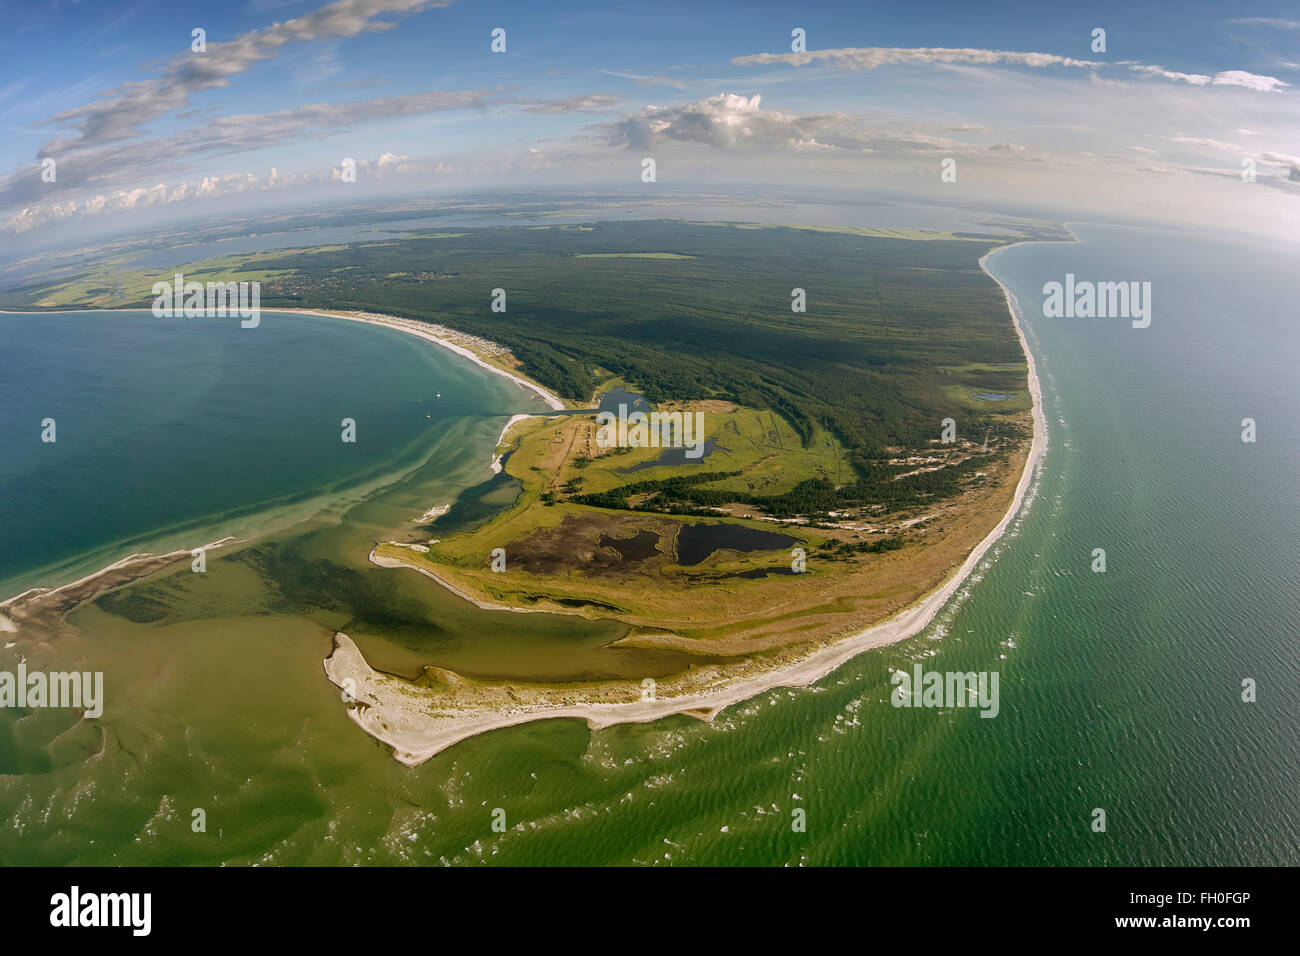 Aerial view, Darsser Ort, Darßer Ort, Baltic, Libbertsee, West beach on the Darss, national park Darsser-place - Stock Image